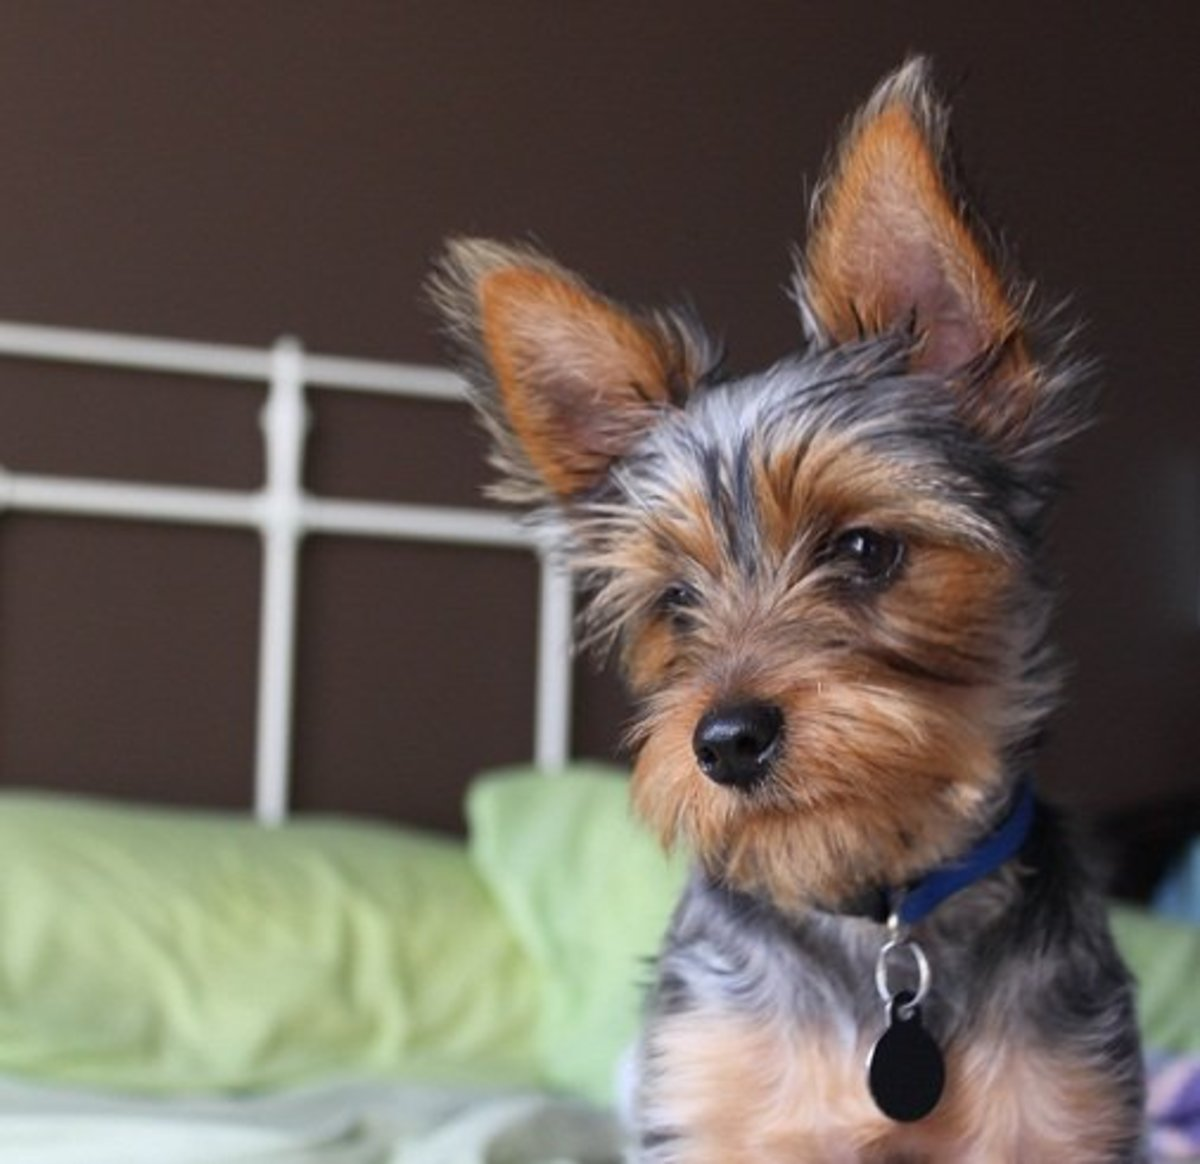 is-it-okay-to-let-your-dogs-sleep-on-your-bed-with-you